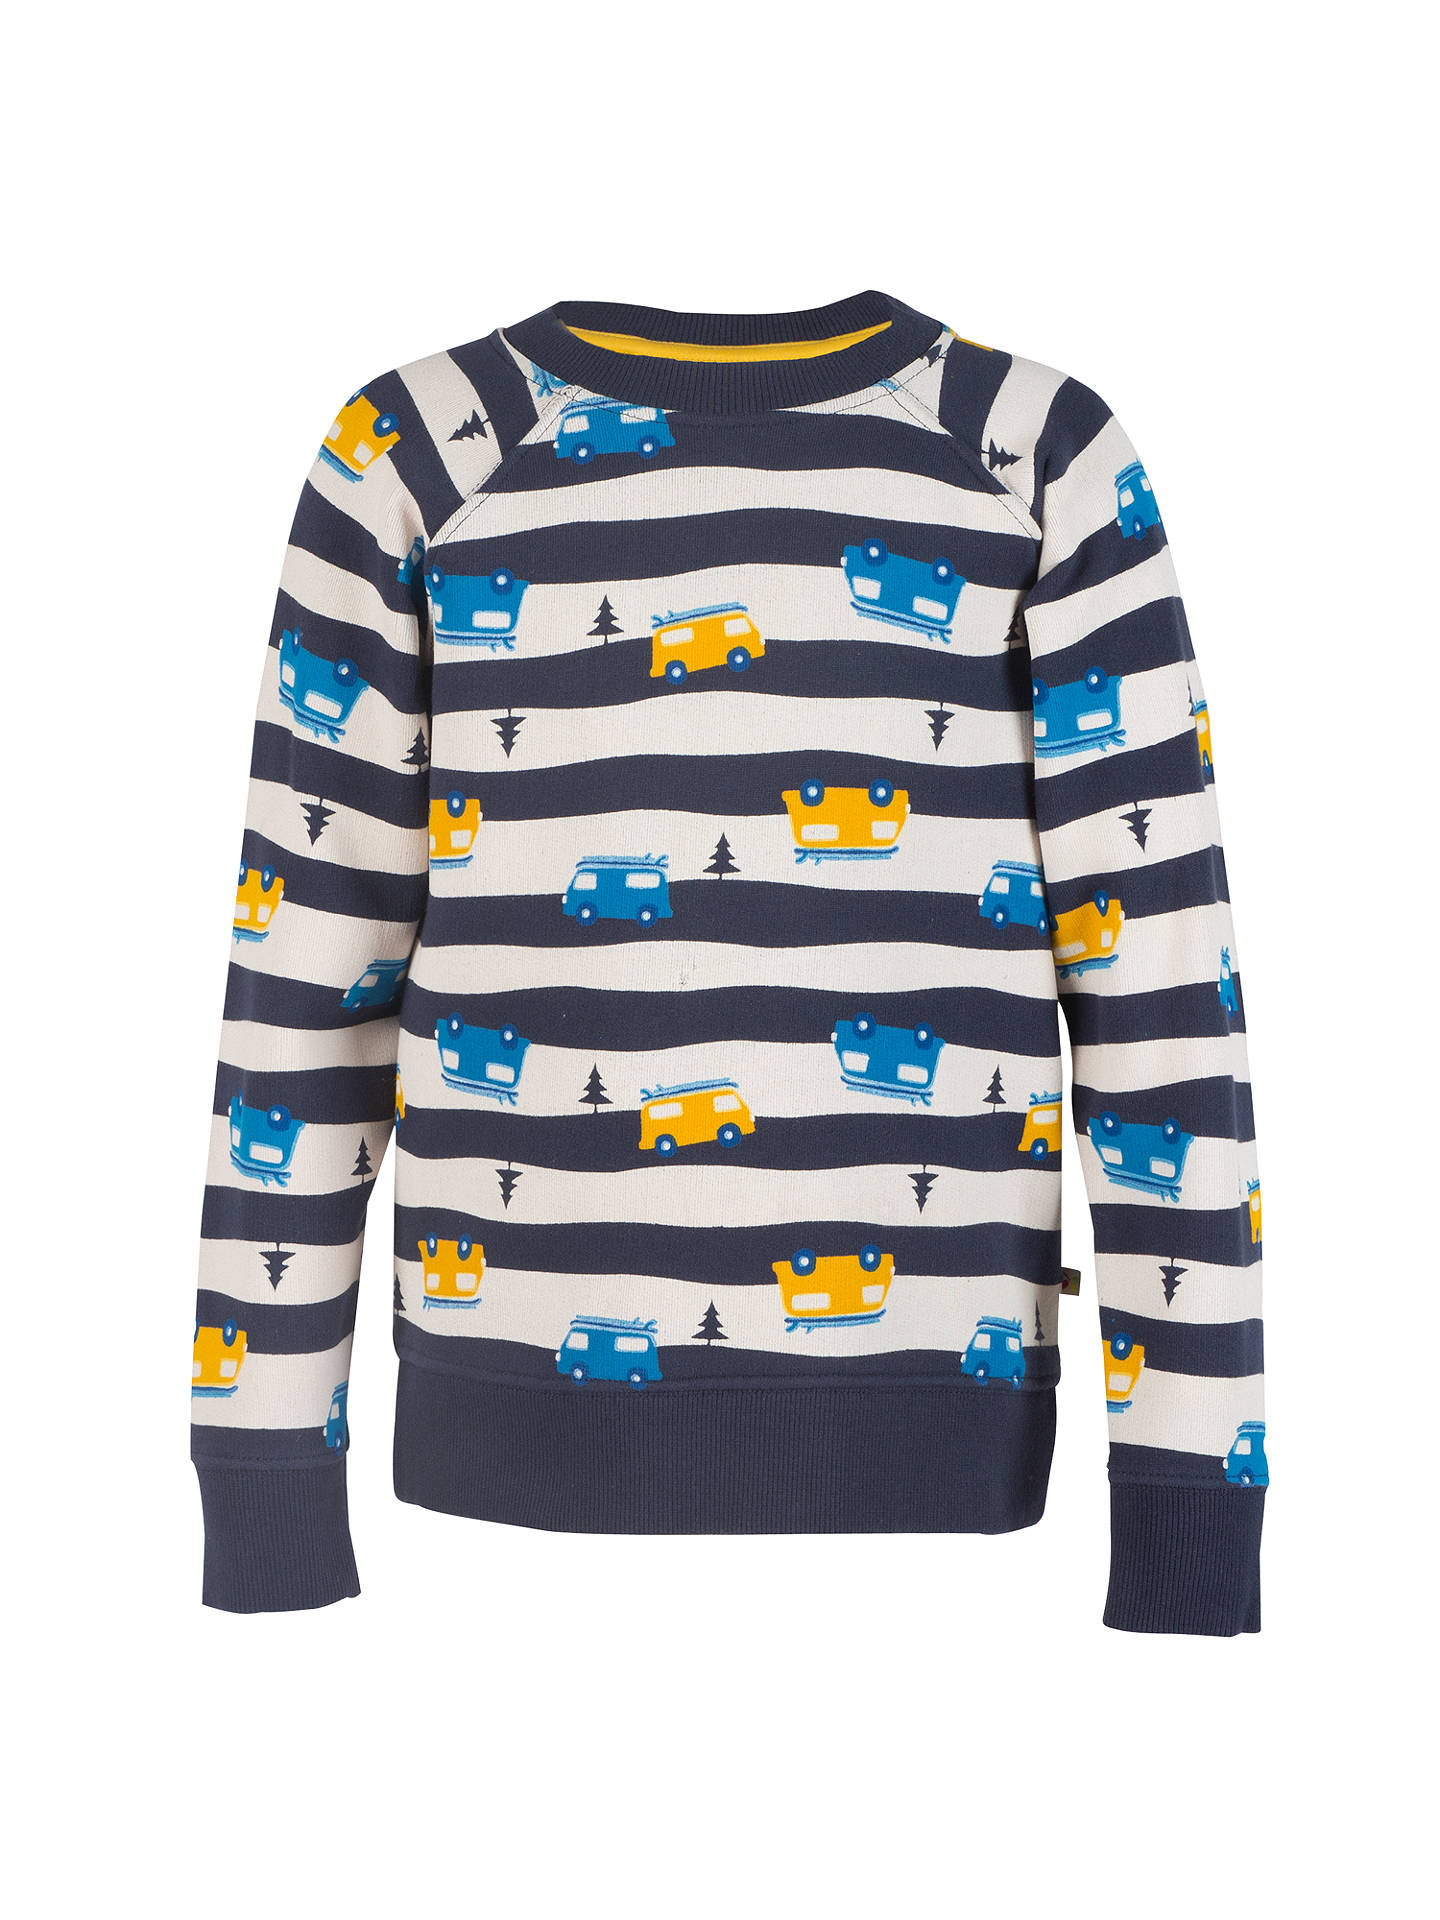 8ec698e31d Buy Frugi Organic Boys  Striped Vans Sweatshirt